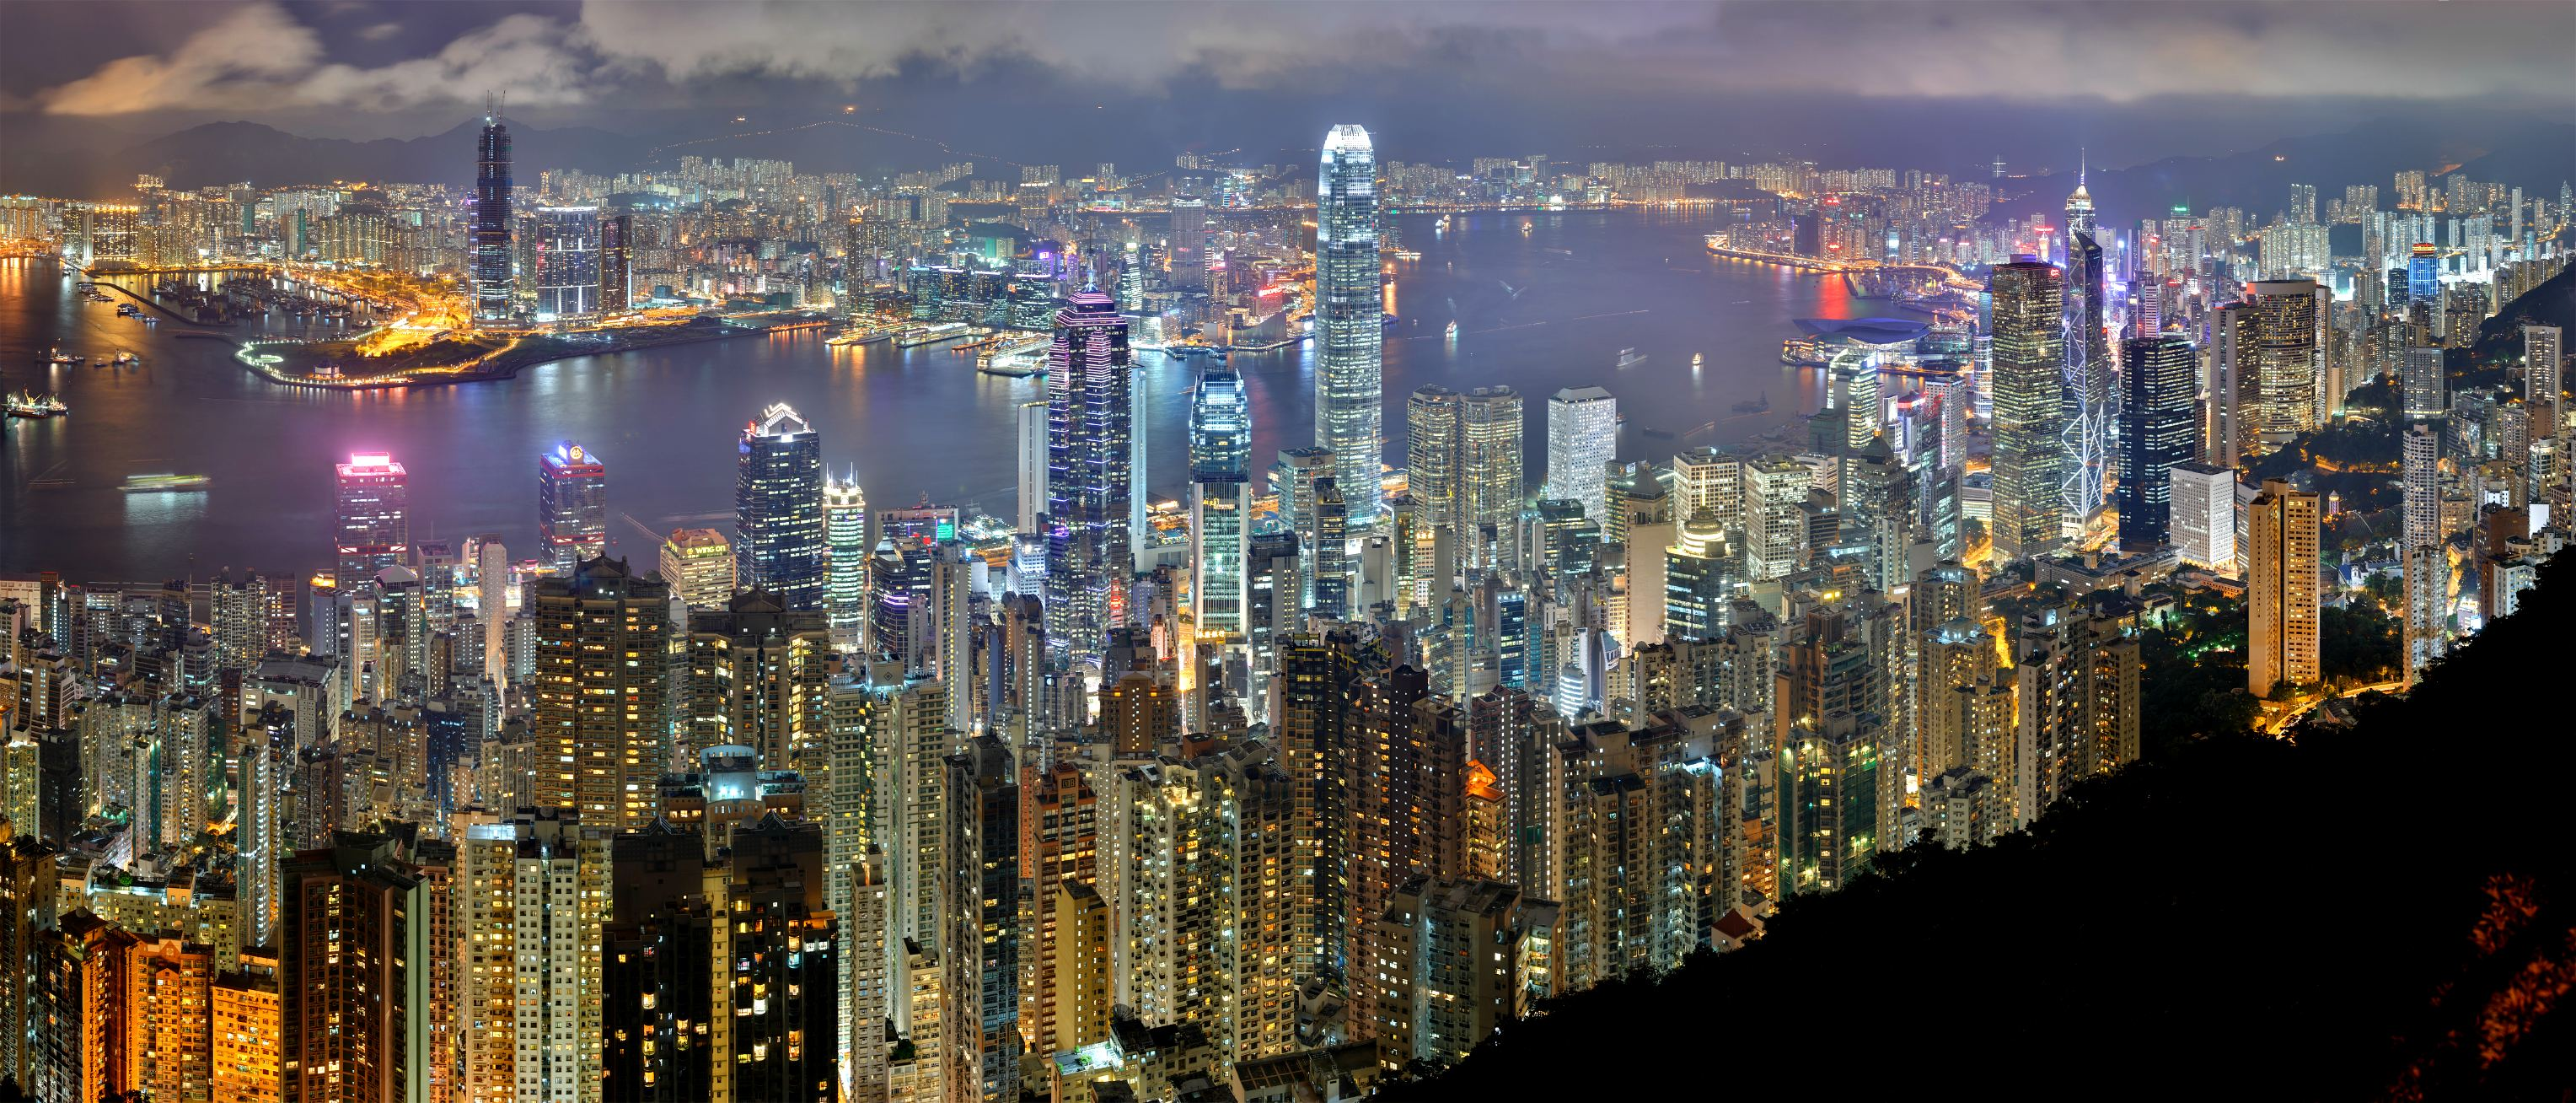 Hong_Kong_Night_Skyline_1.jpg